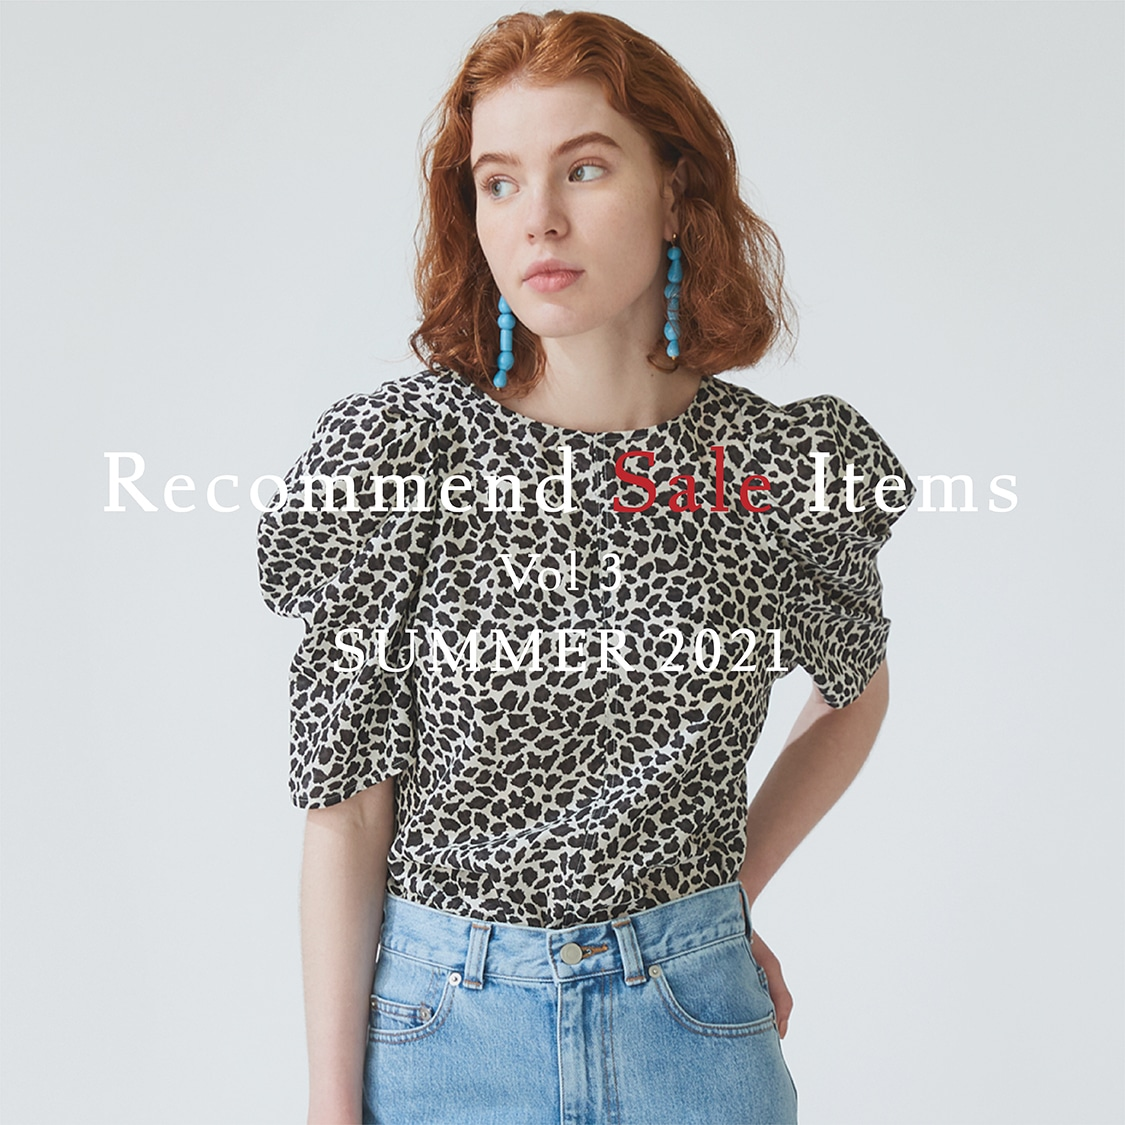 Recommend Sale Items for Women Vol3 SUMMER 2021